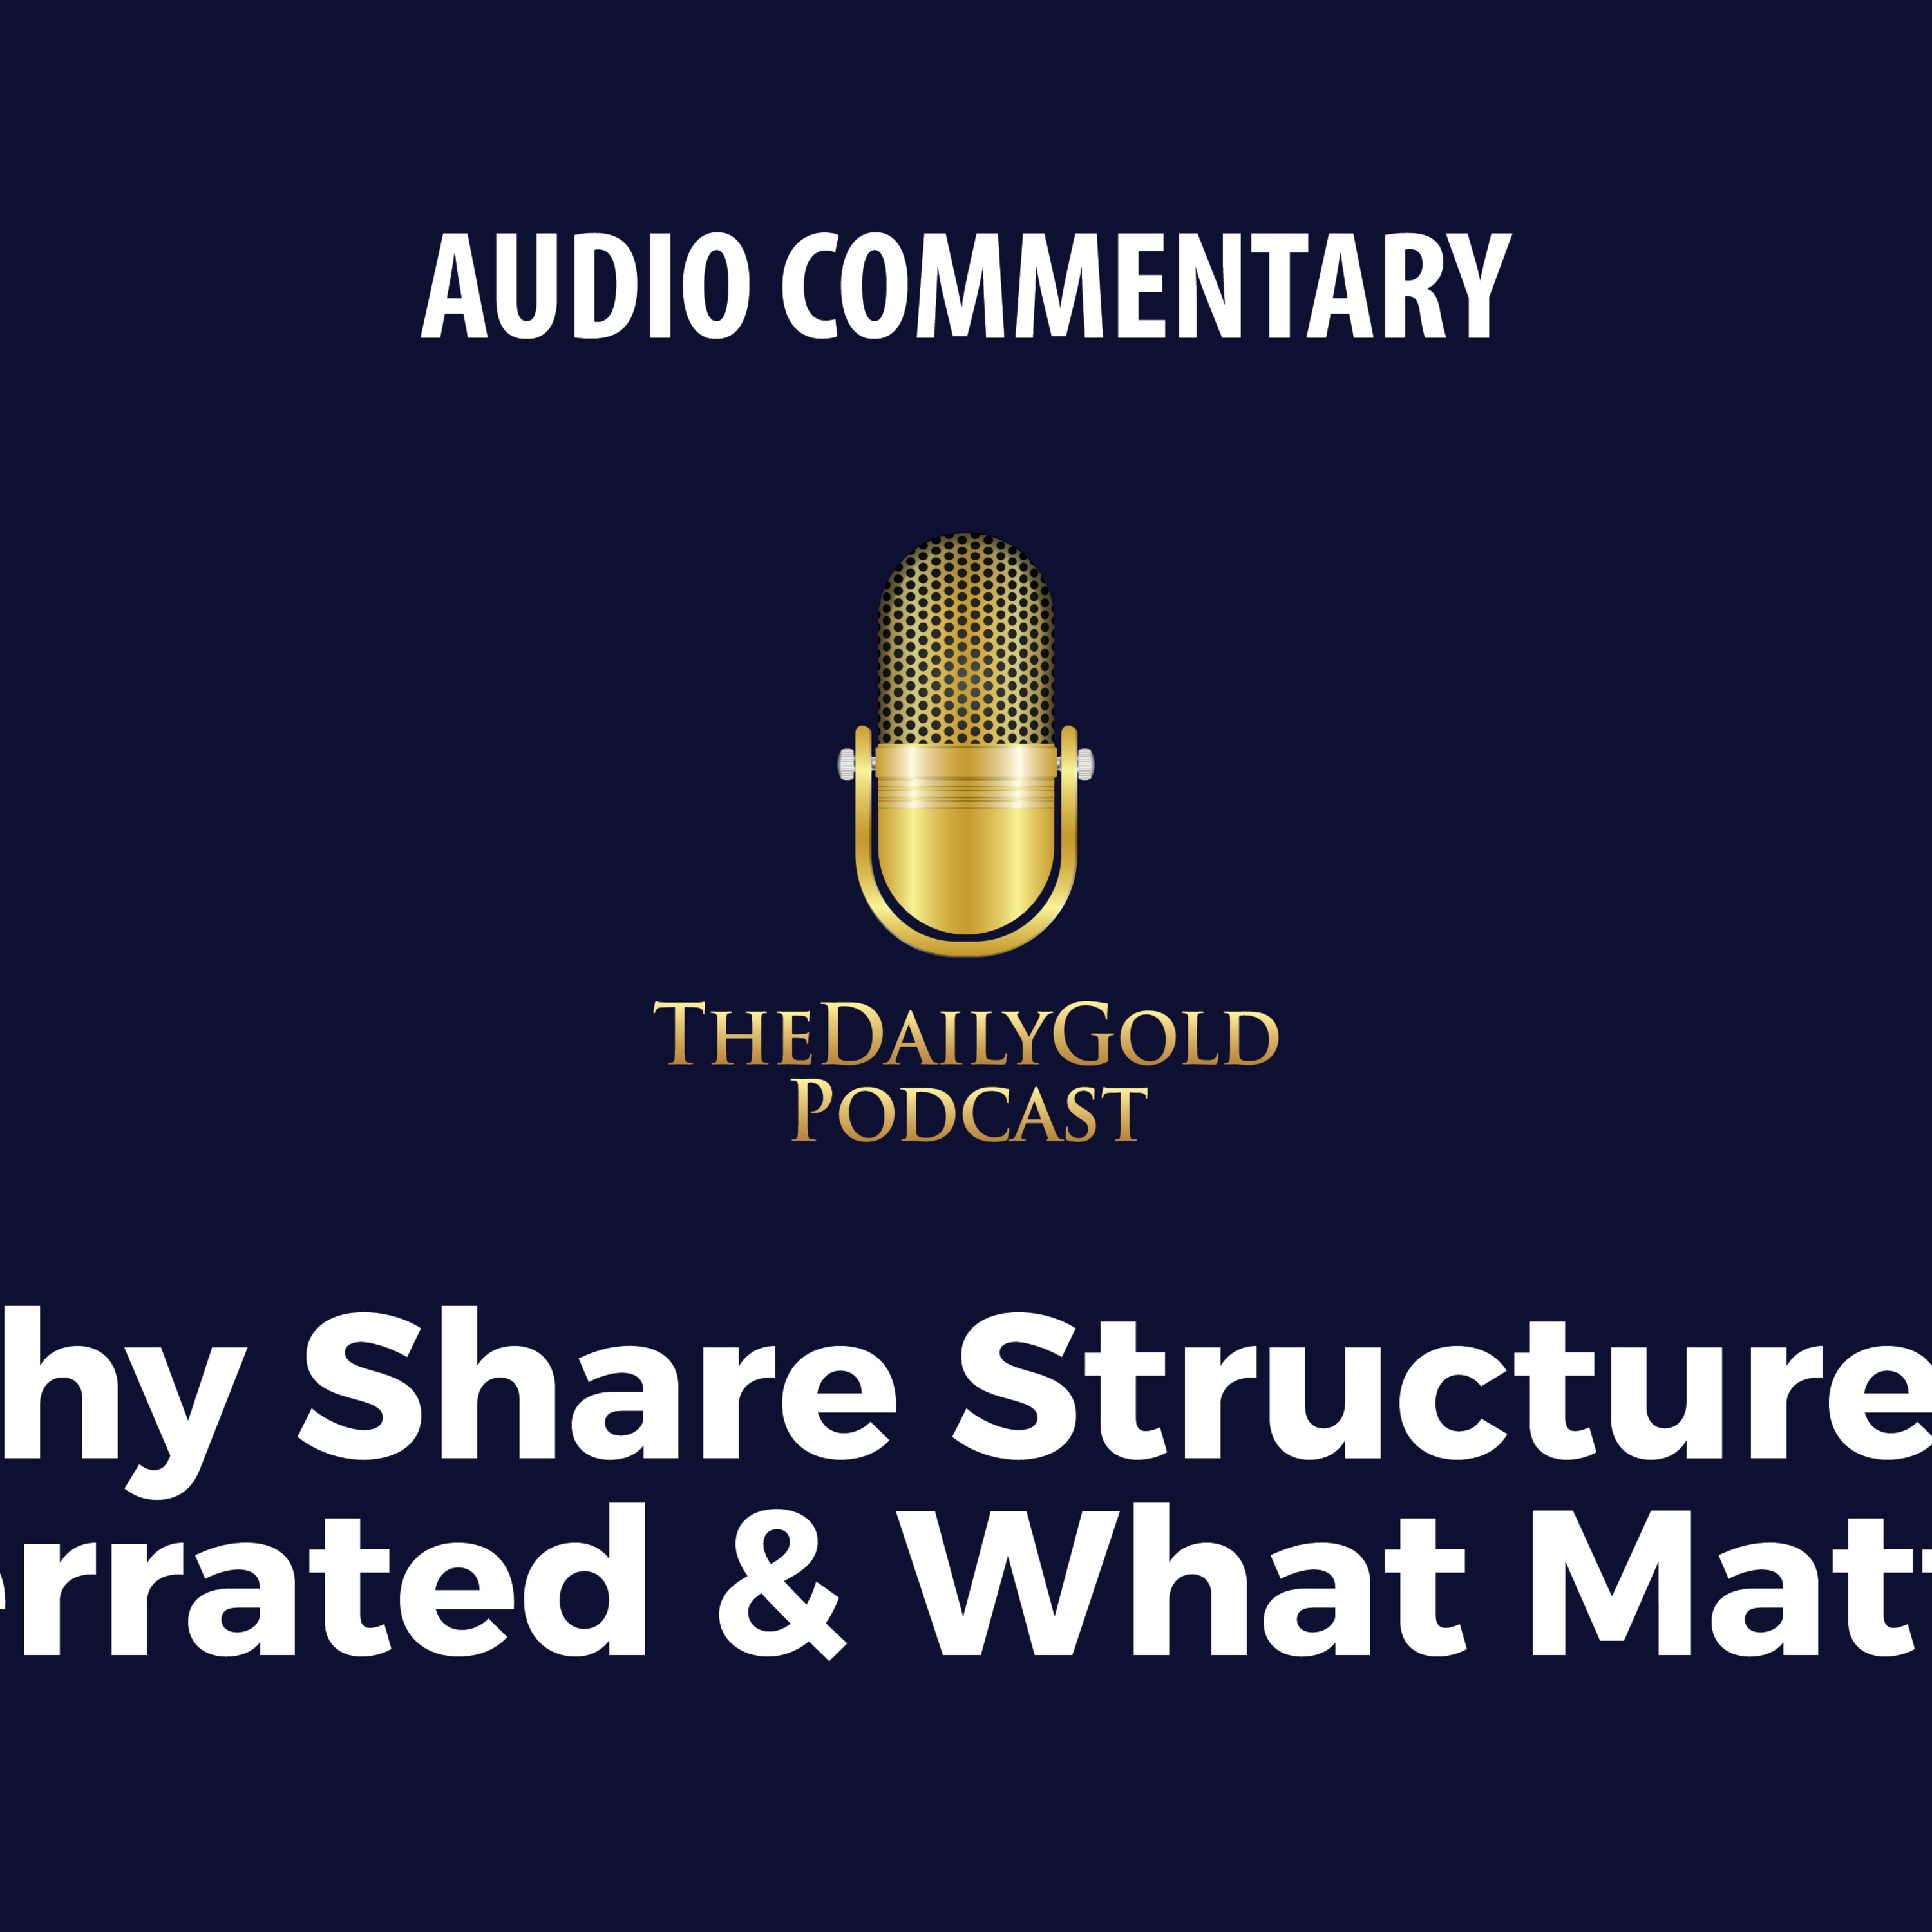 Share Structure is Overrated & What Matters